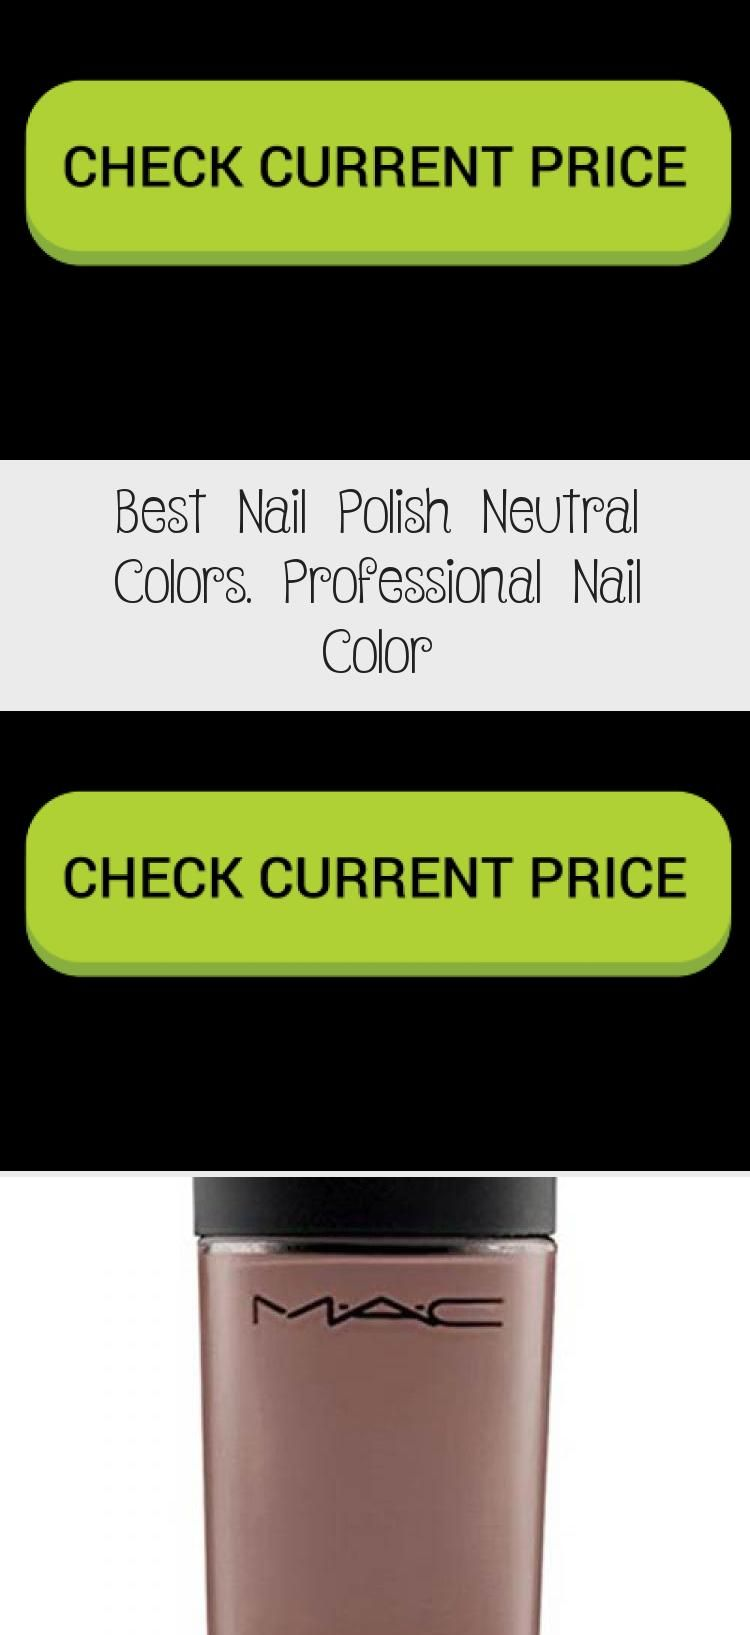 Best Nail Polish Neutral Colors. Professional Nail Color – Nail Art Desing